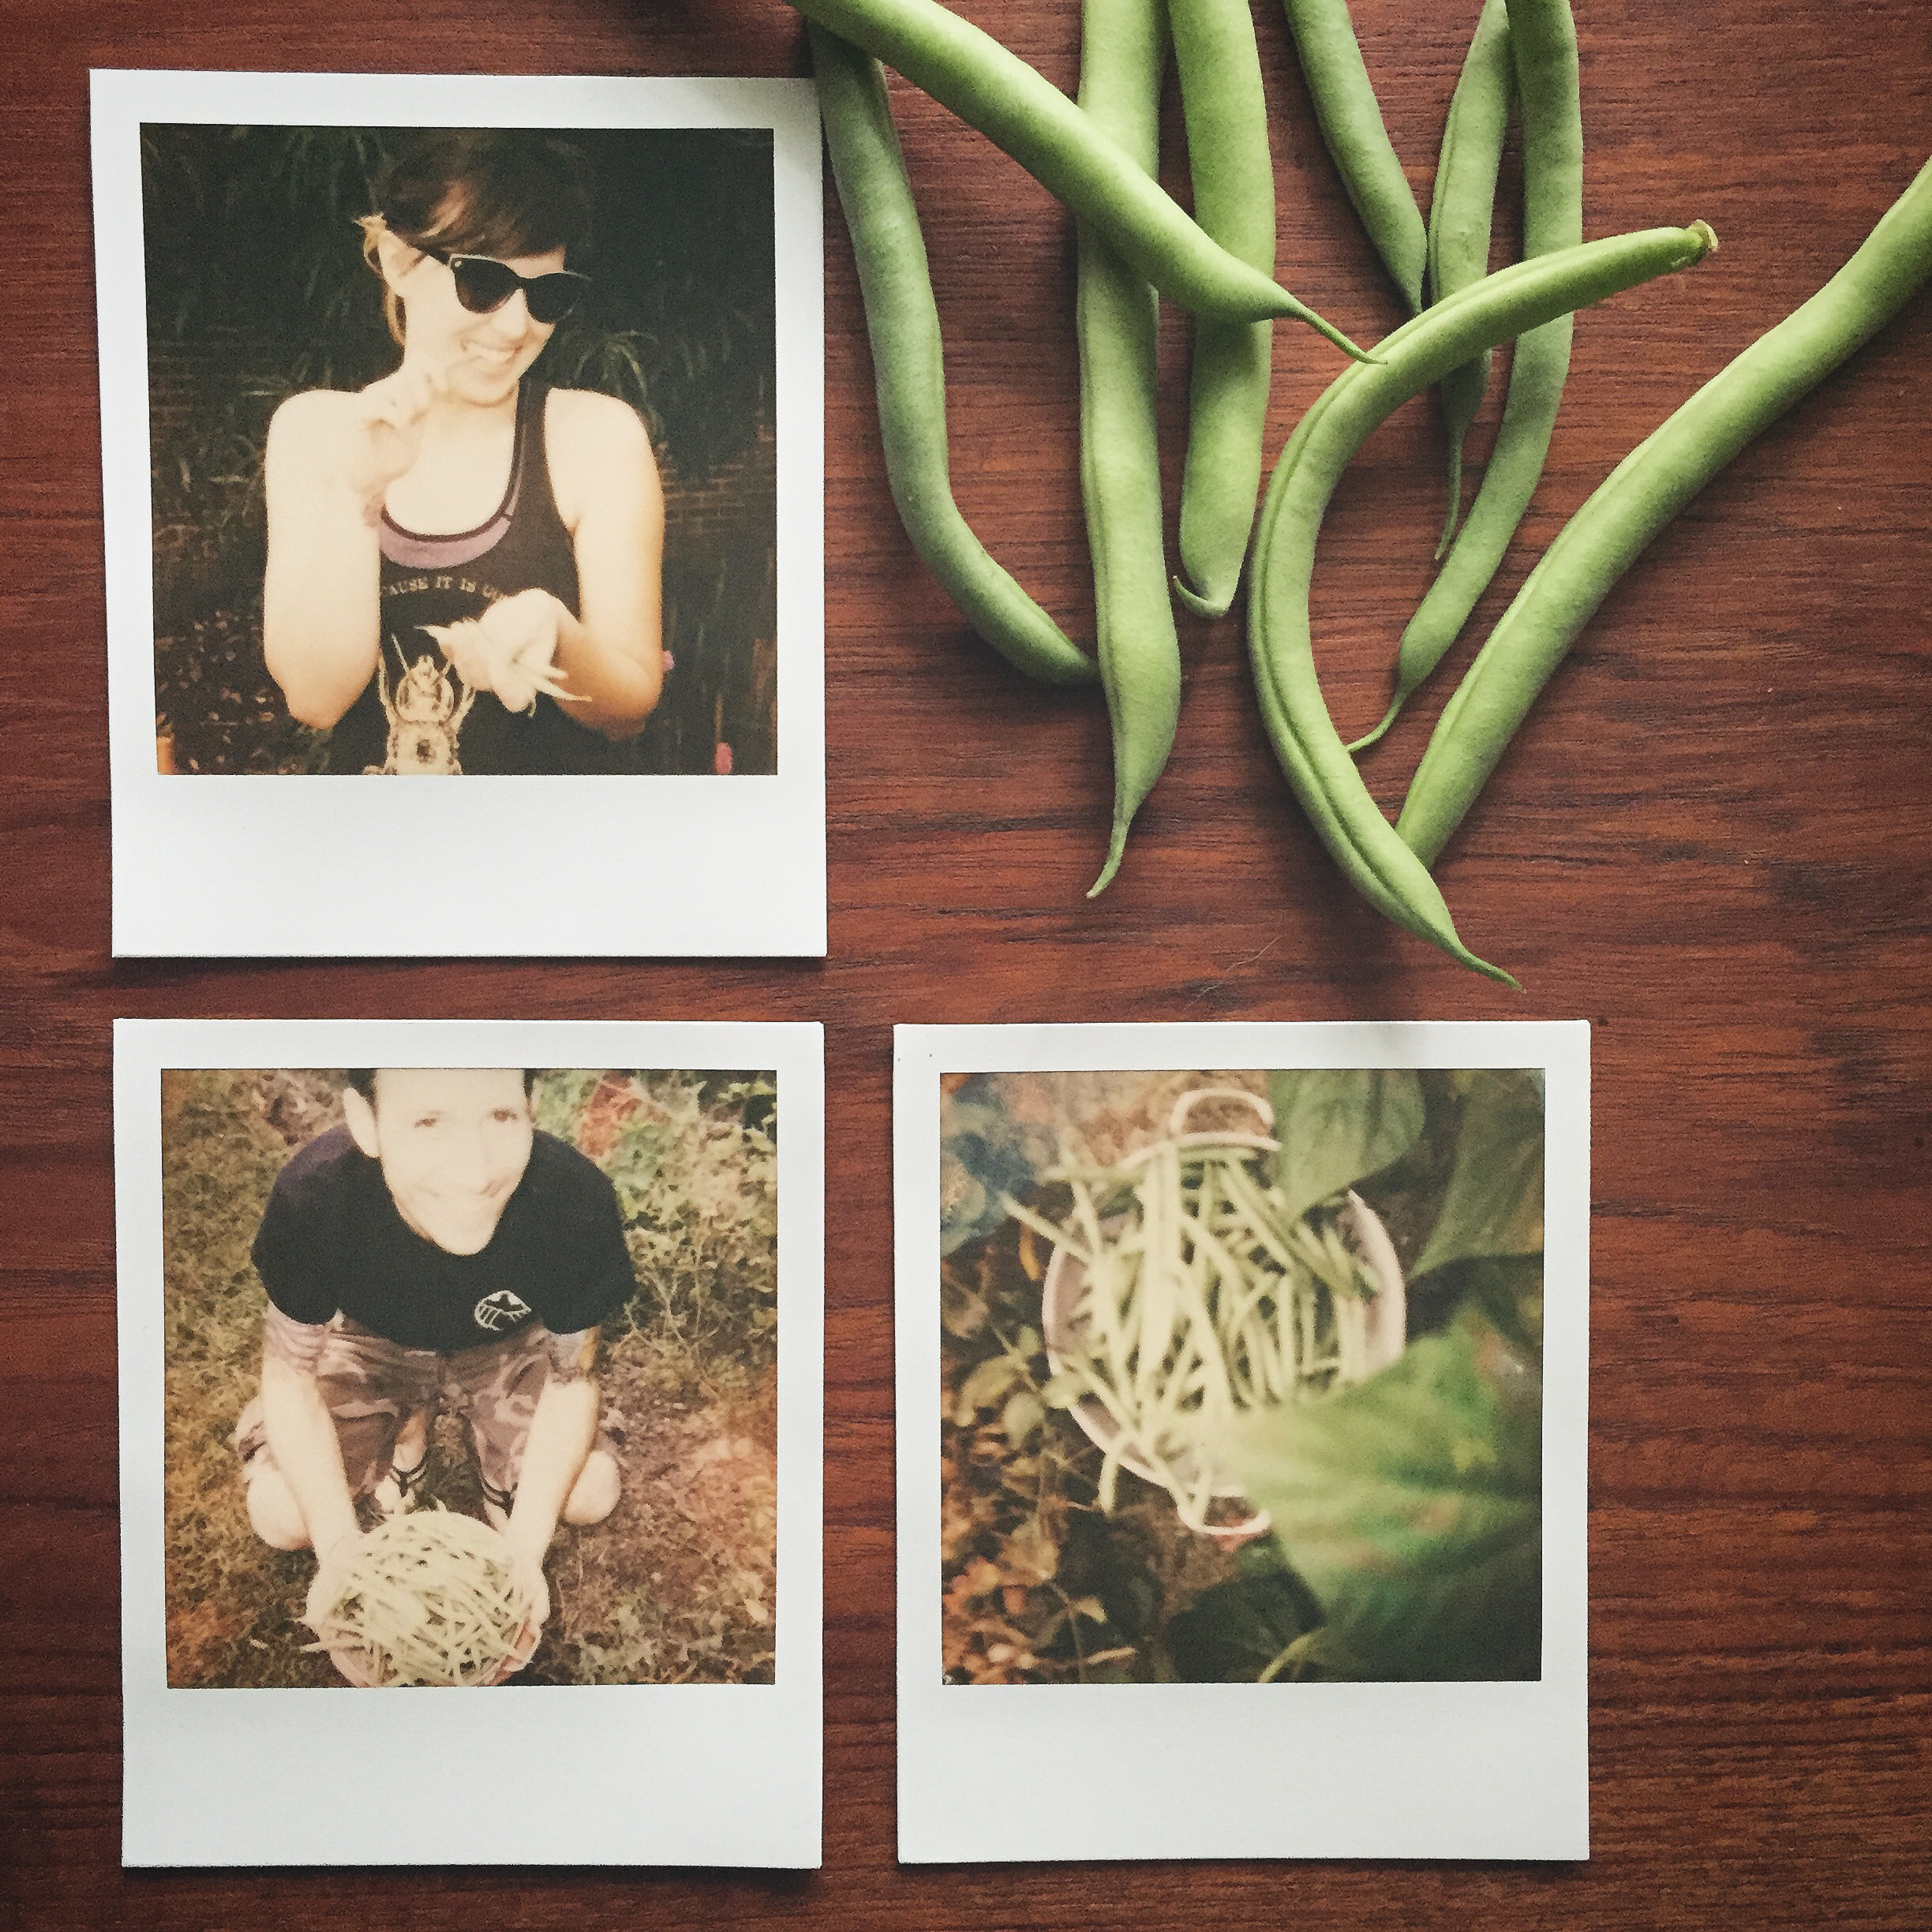 Impossible Project film on the S+S instagram